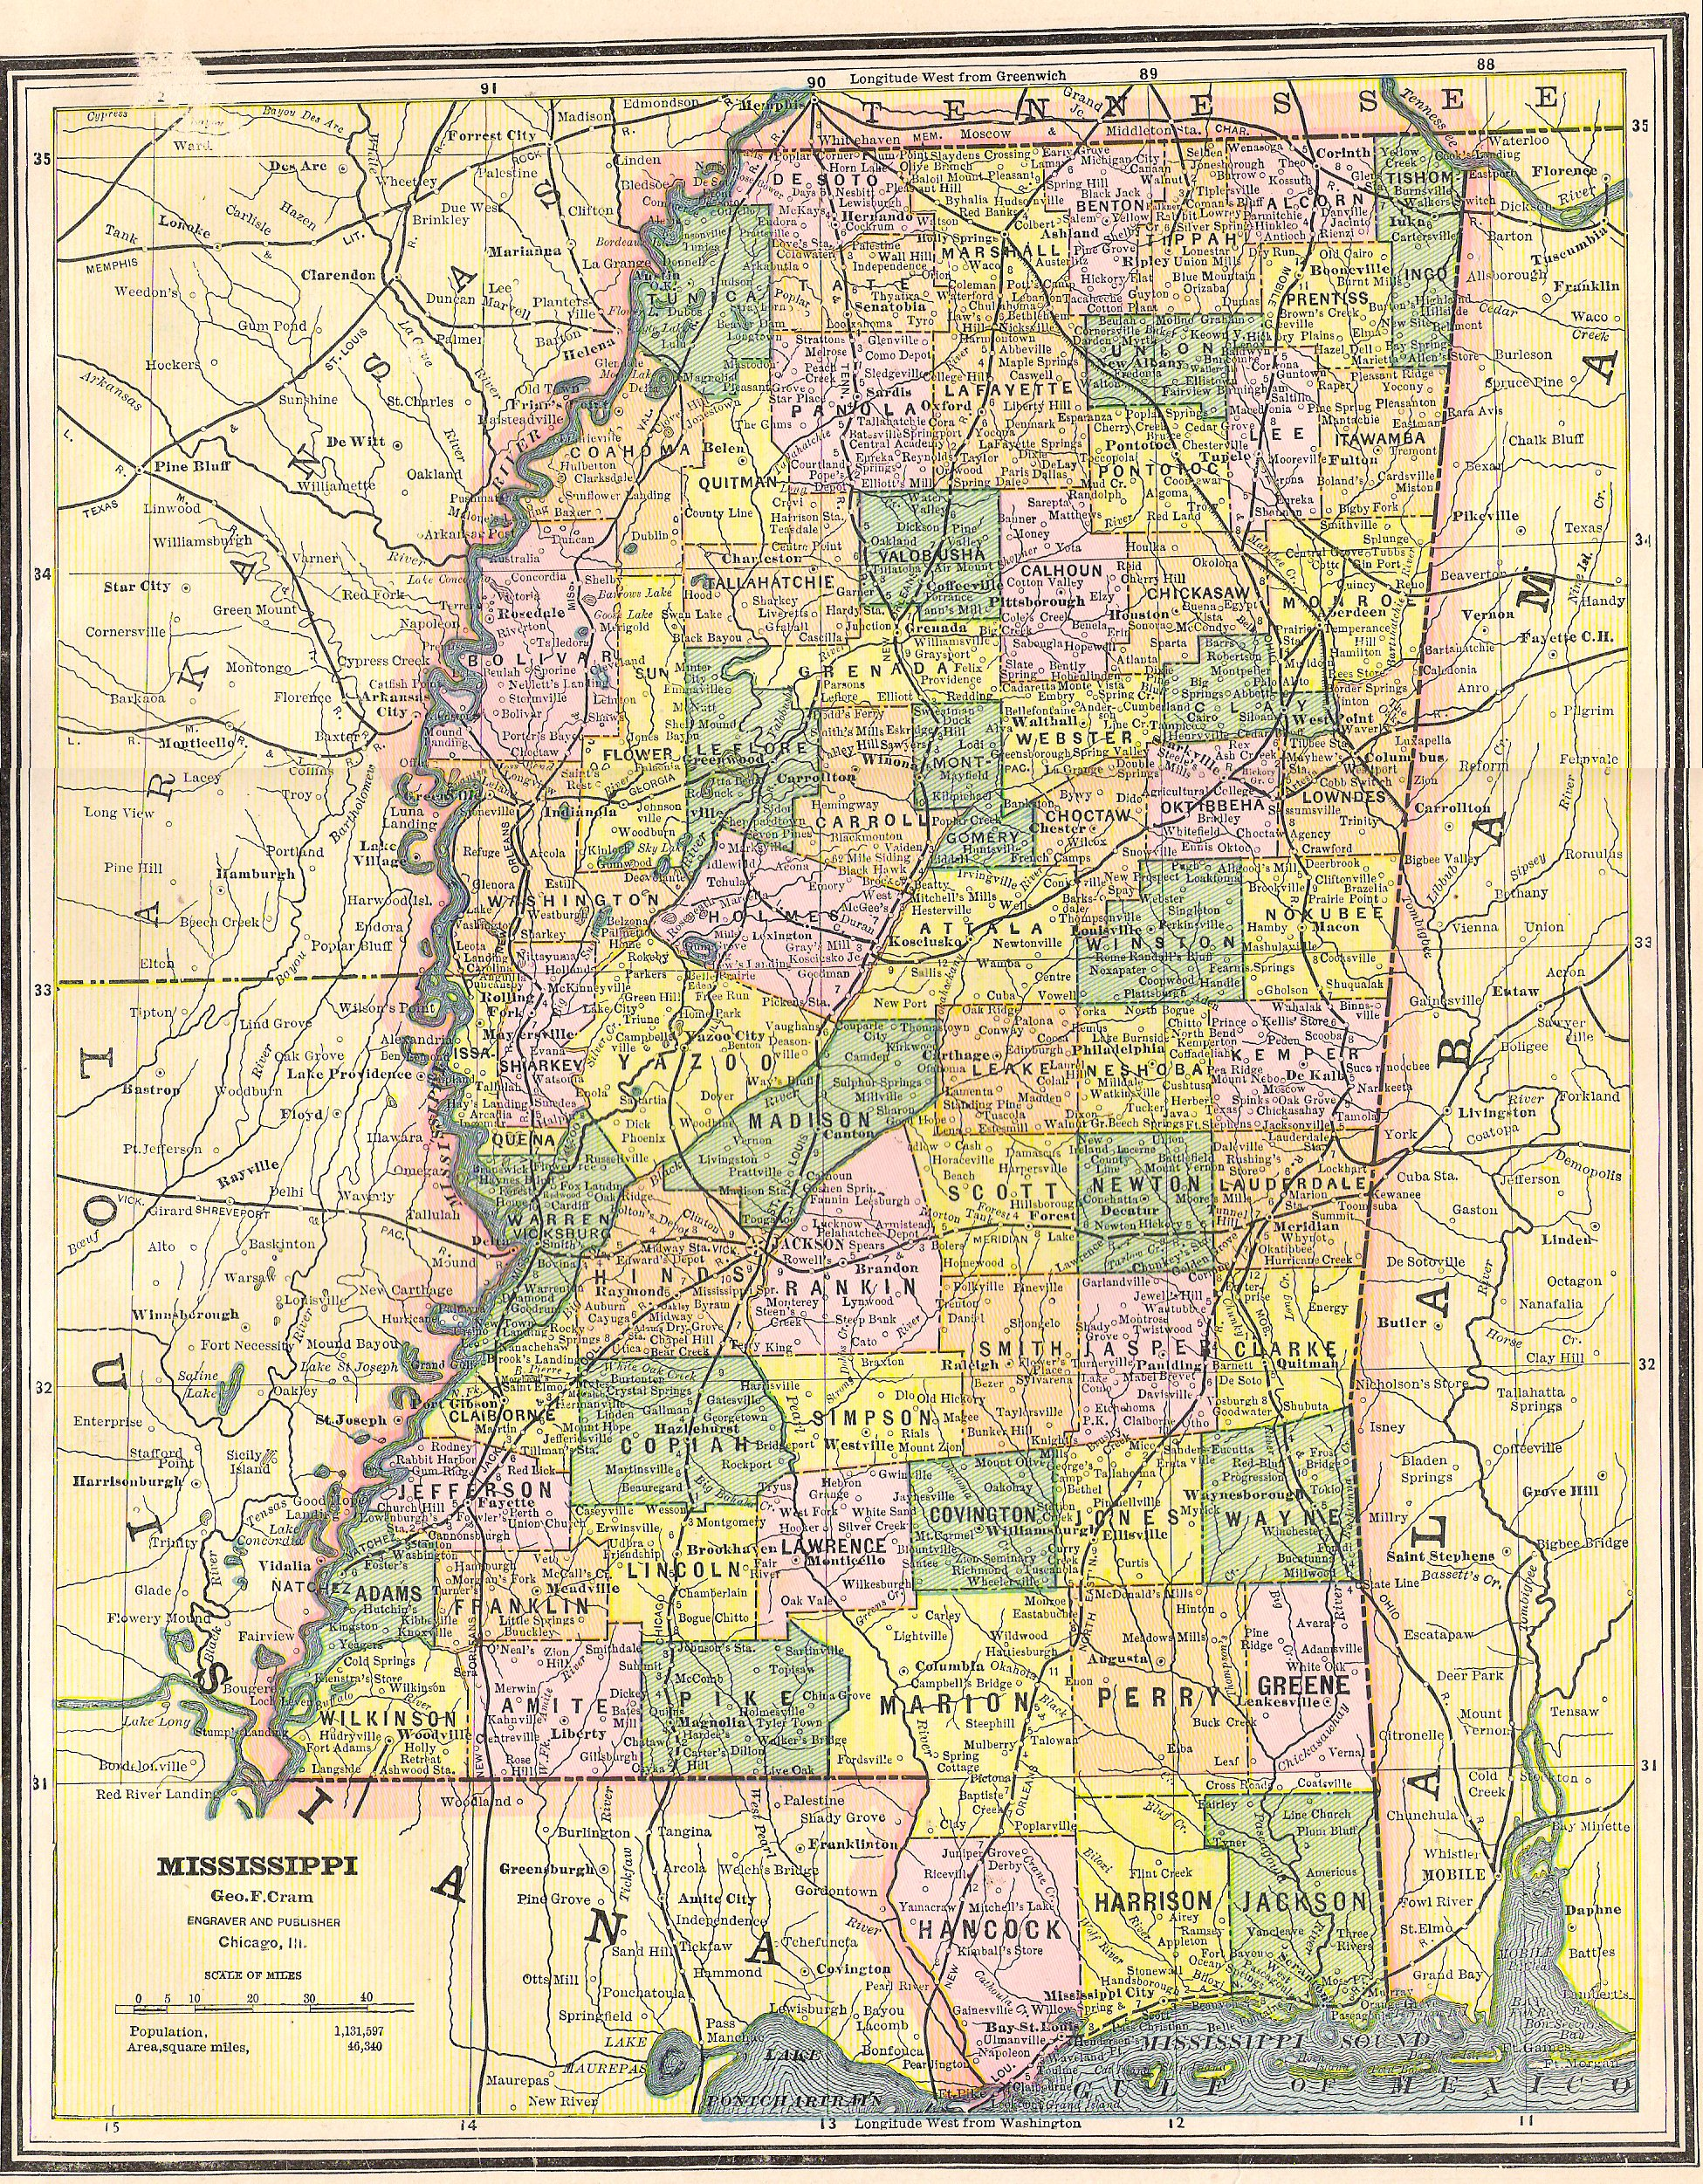 Jefferson County Mississippi Maps At Mississippi Genealogy - Maps mississippi